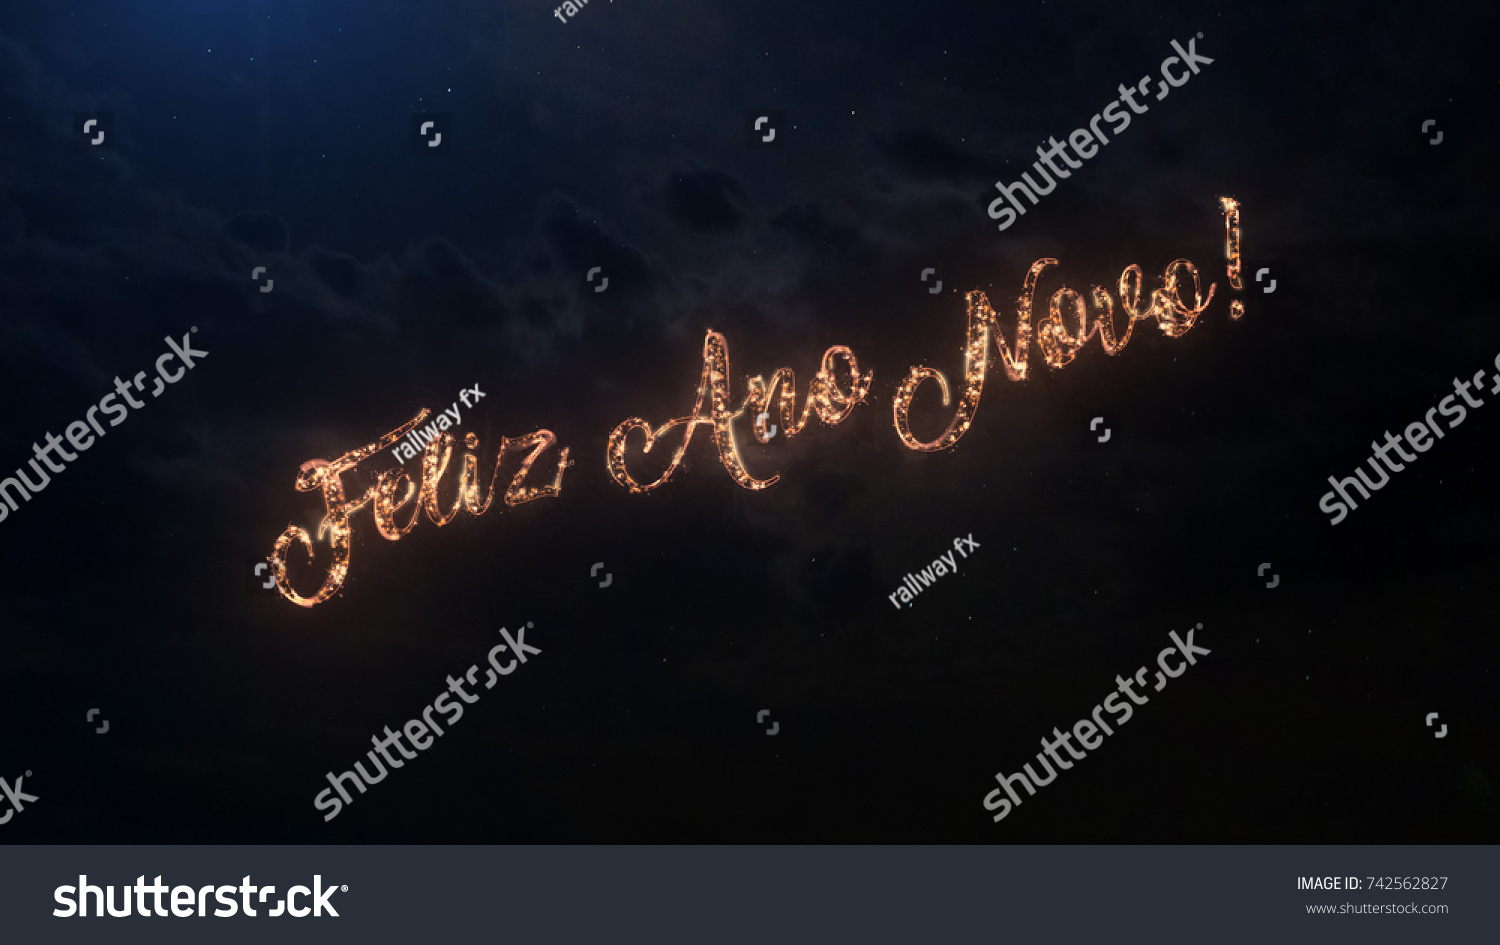 Happy New Year Greeting Text In Portugal With Particles And Sparks